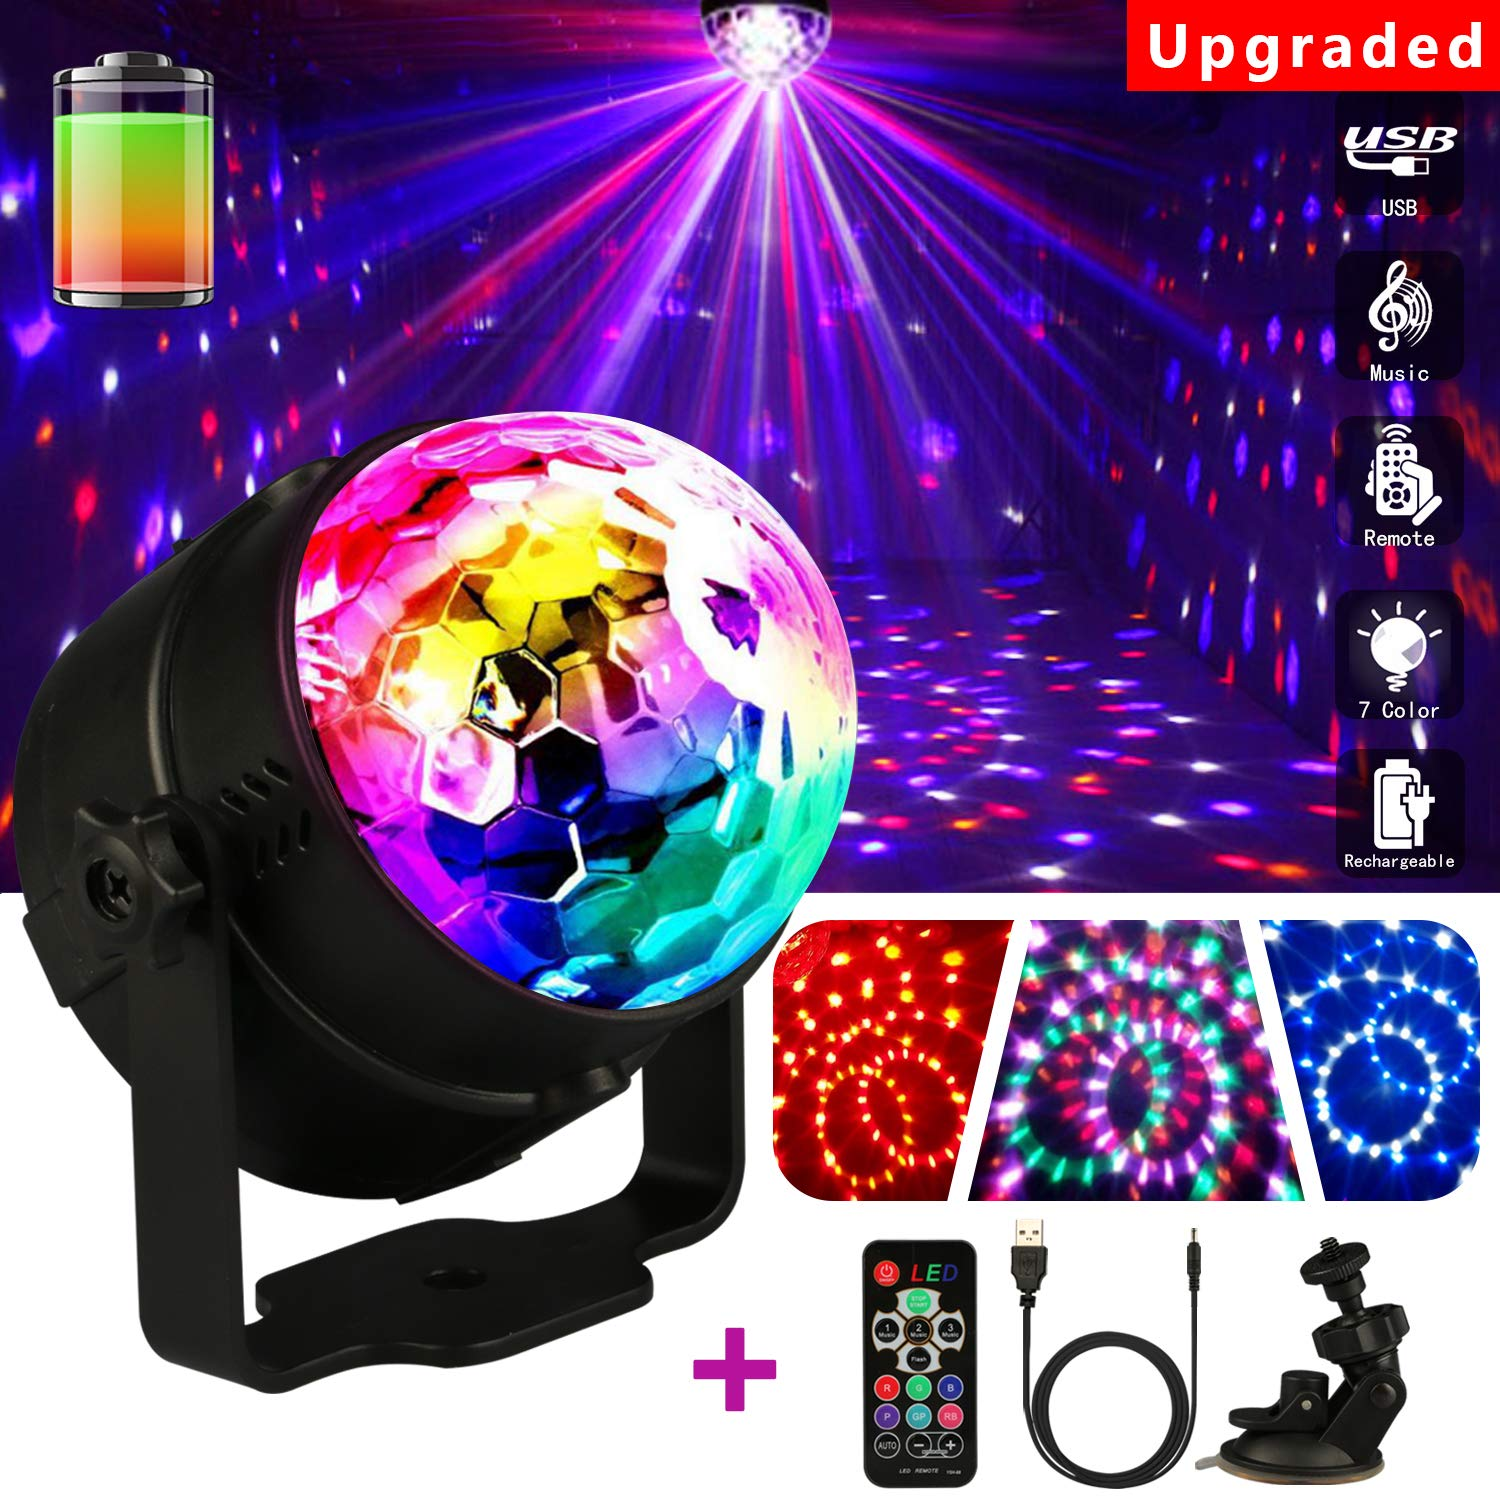 Disco Lights Party Lights, Emooqi 2018 New Upgrade Stage Lights Disco Ball With 7 Modes 3W RGB +360° Rotating Suction Cup Bracket +5-7 hour No need to charge +48dB Sensitive Sound Activated for Parties